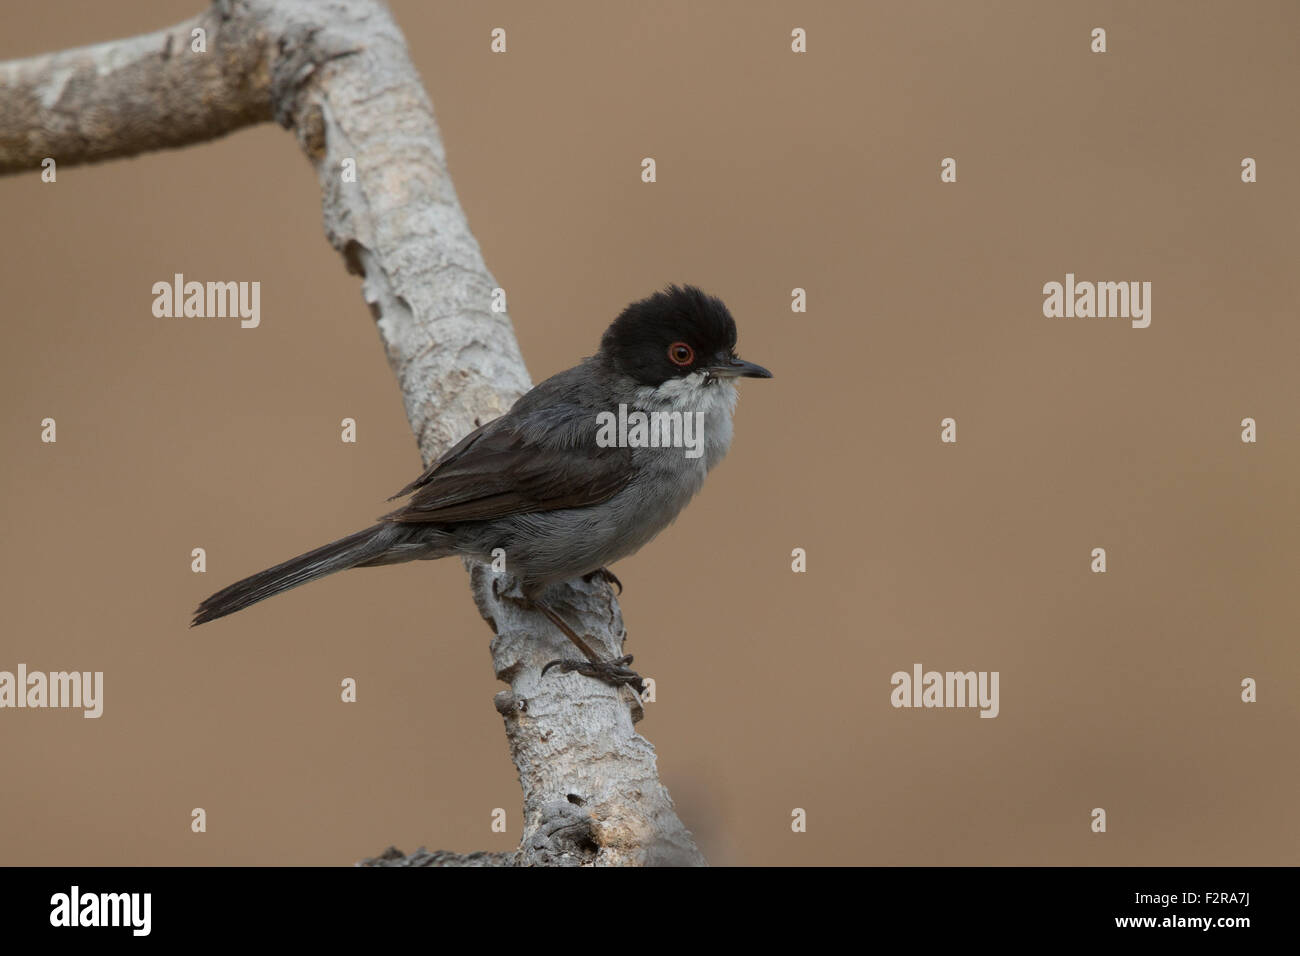 Sardinian Warbler in Andalucia Stock Photo